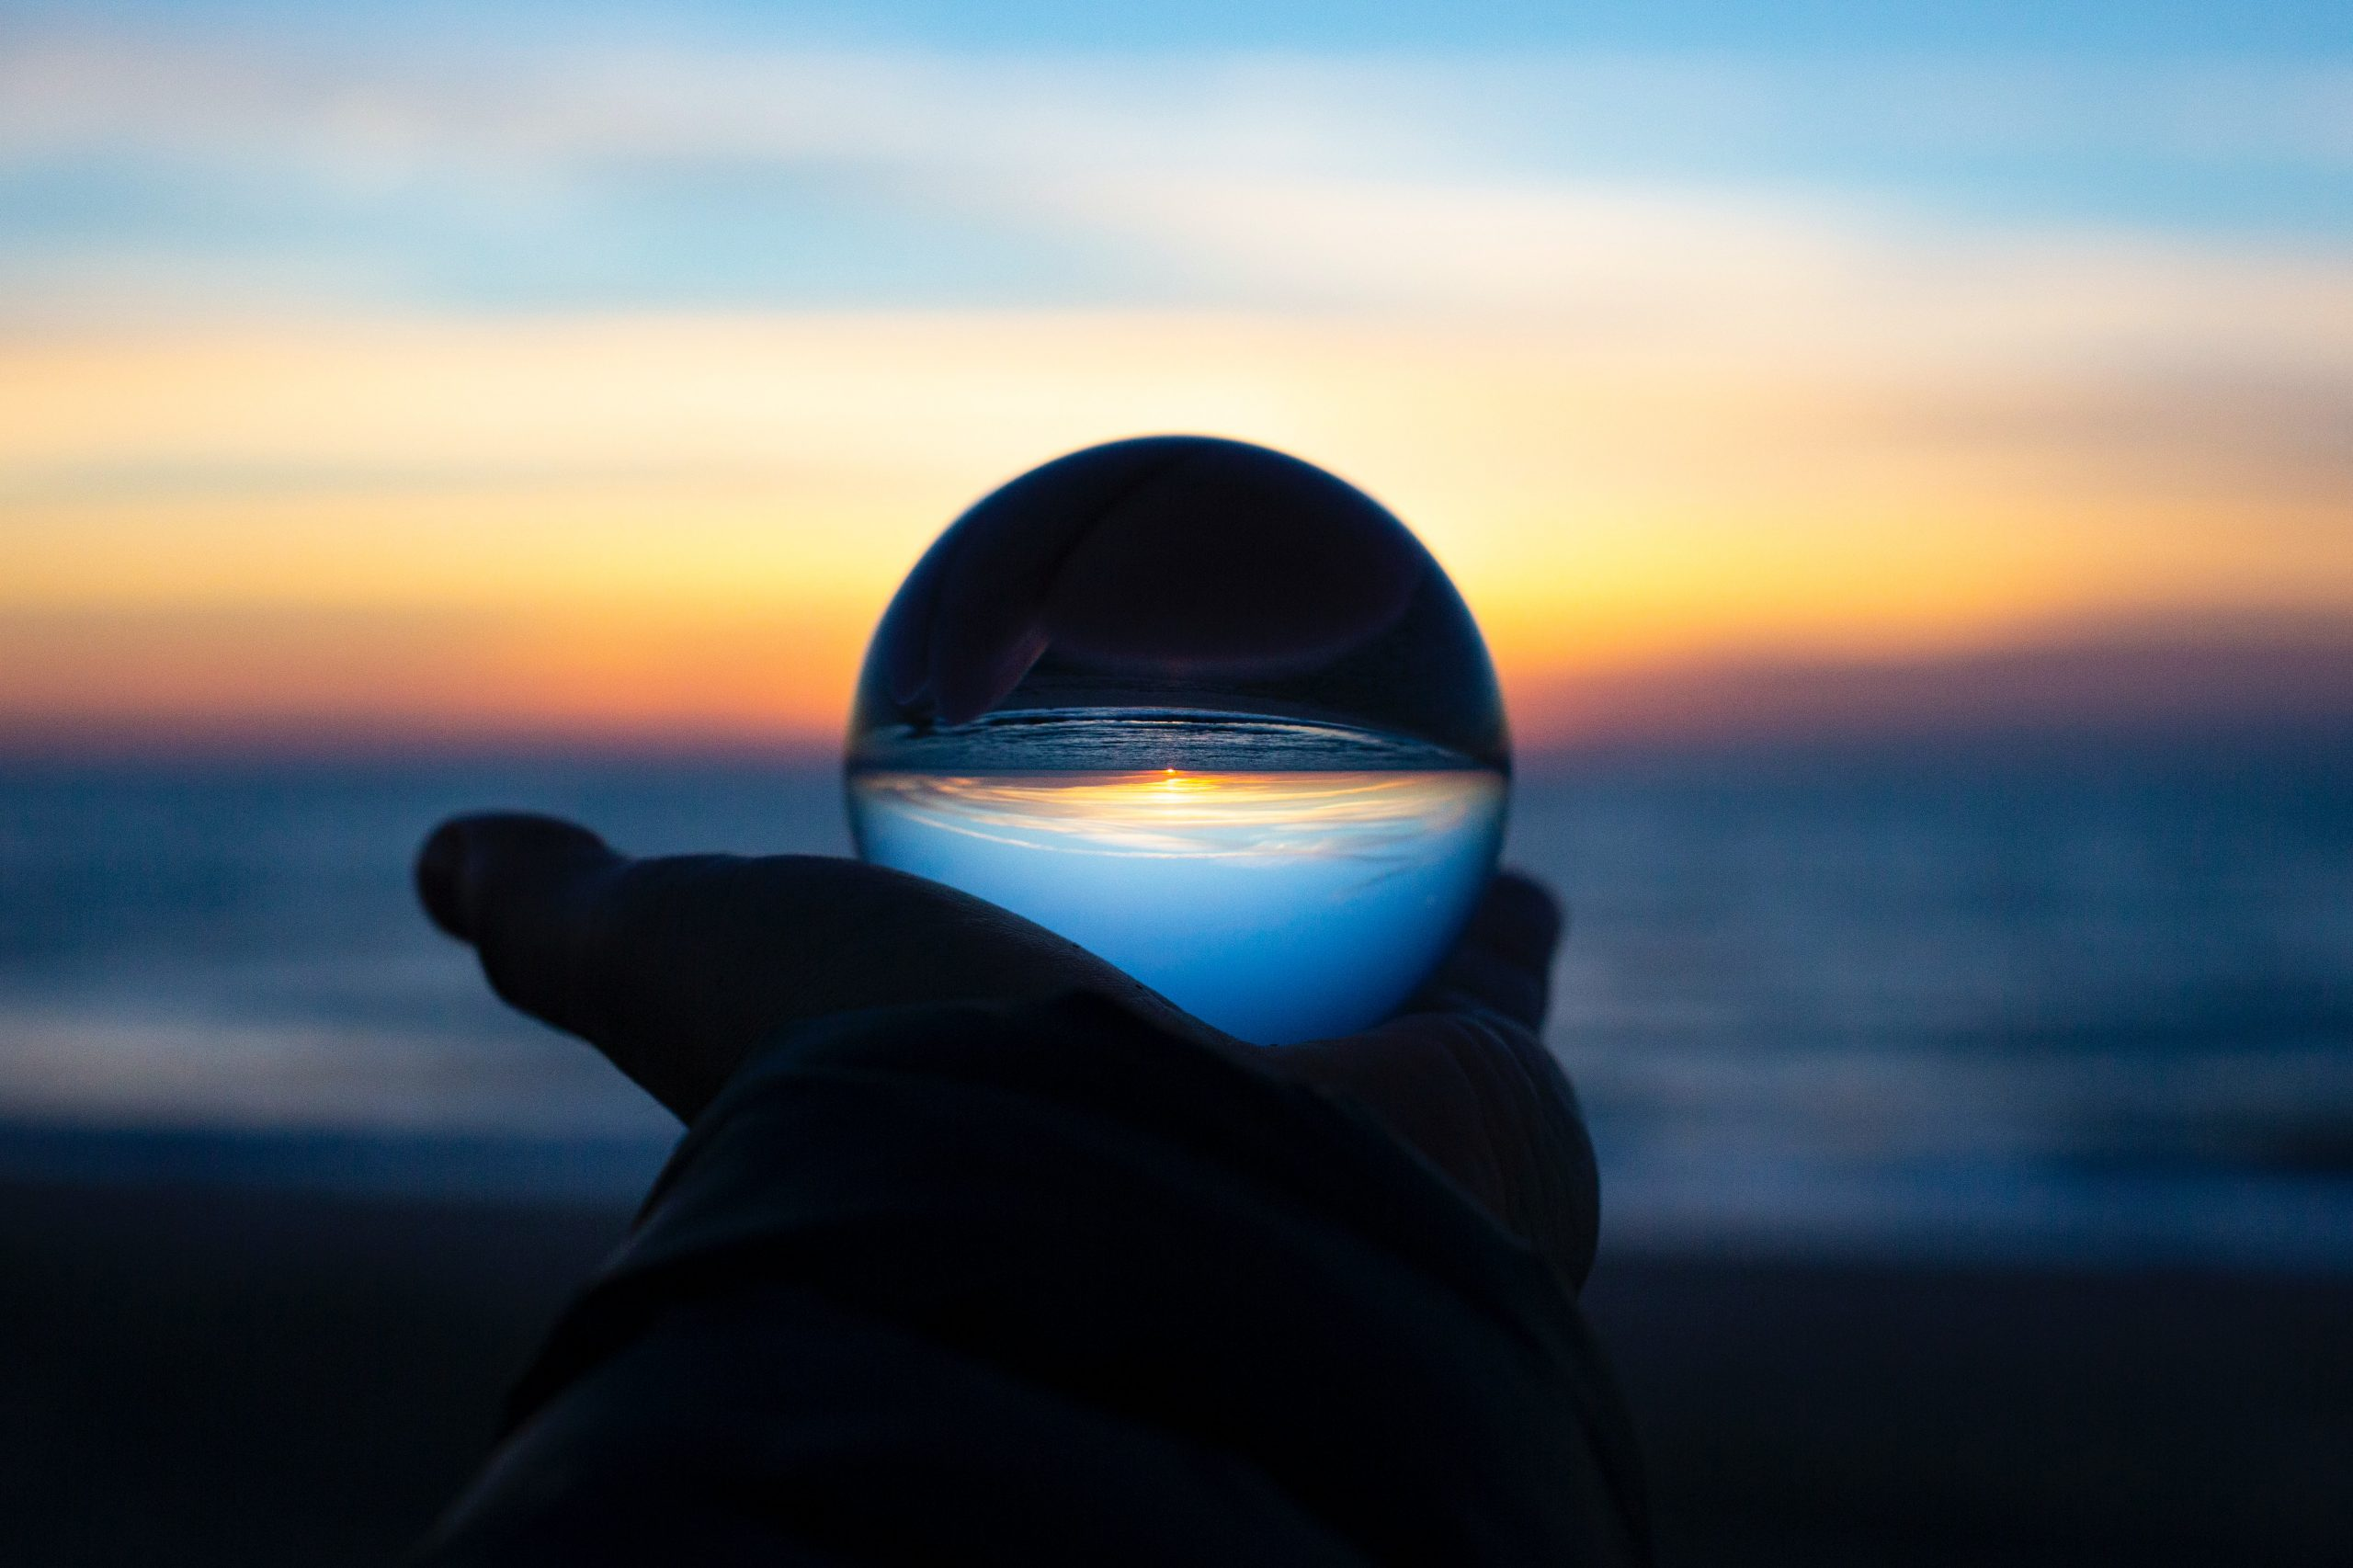 Crystal ball and ocean sunset